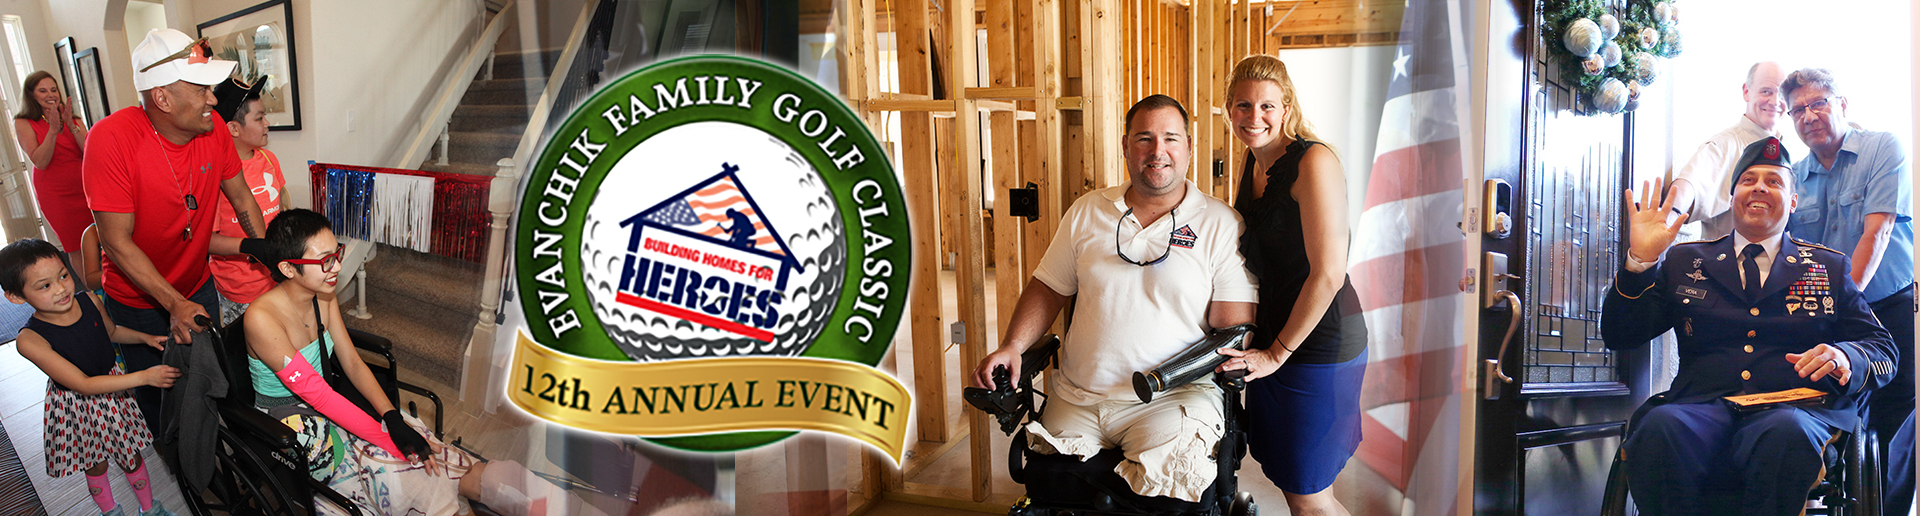 12th Annual Evanchik Family Golf Classic @ Forsgate Country Club